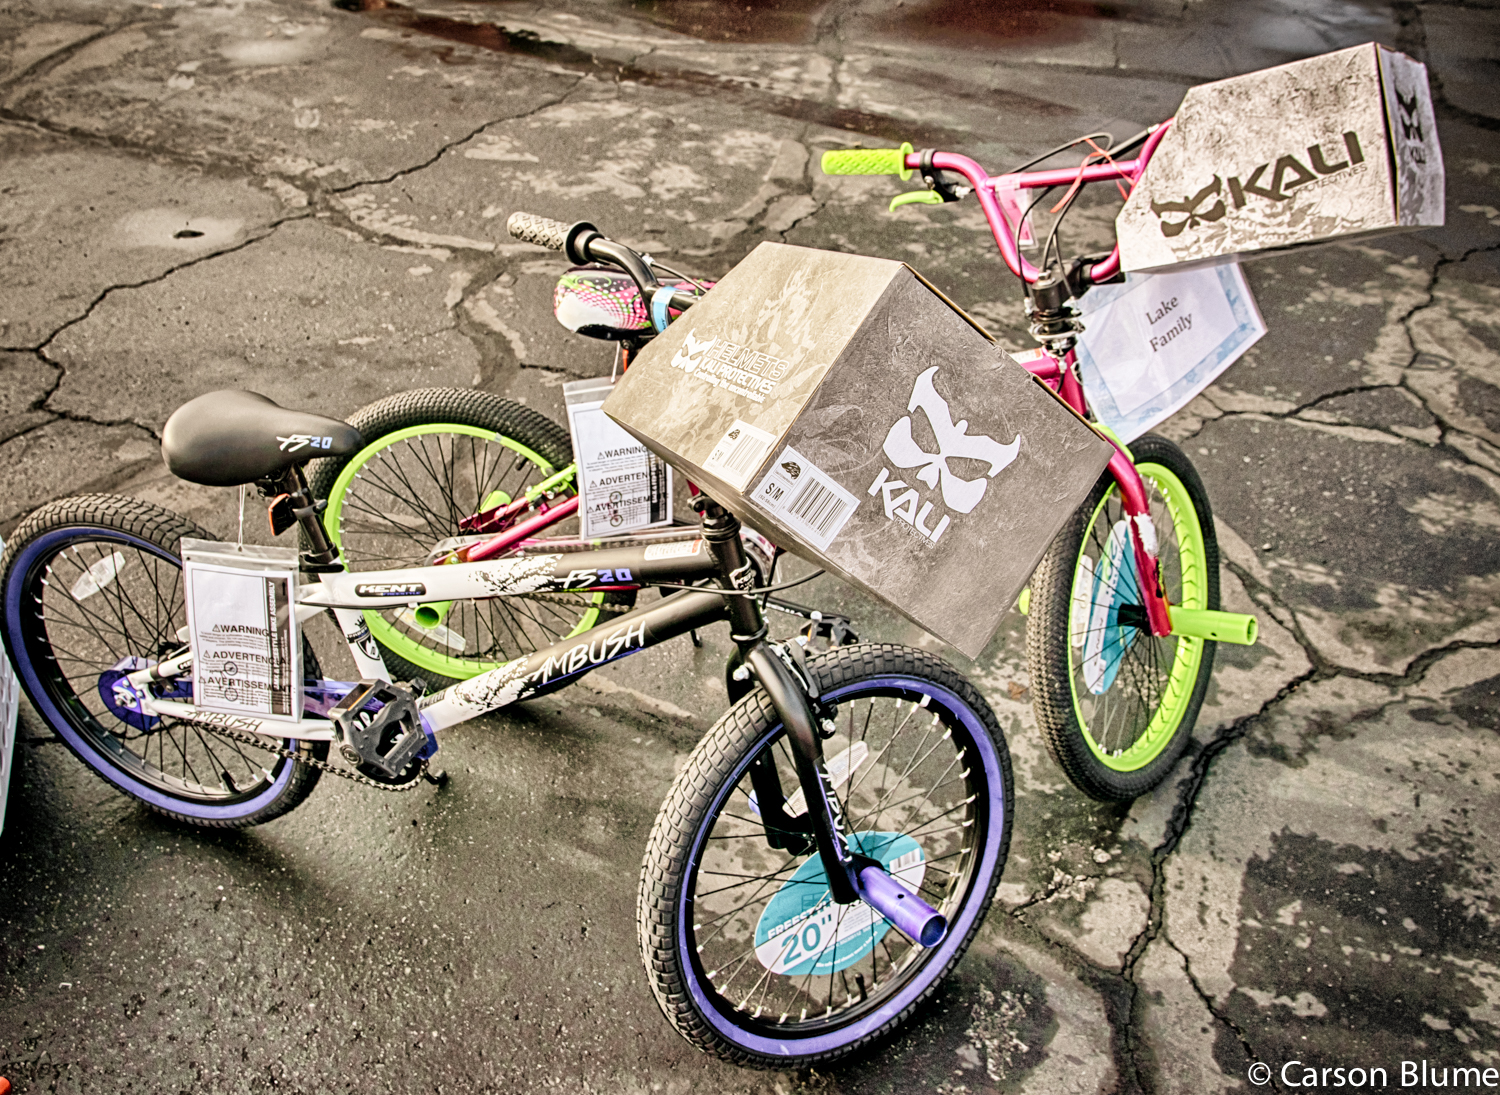 20151224_Bike4Kids-0027_HDR.jpg